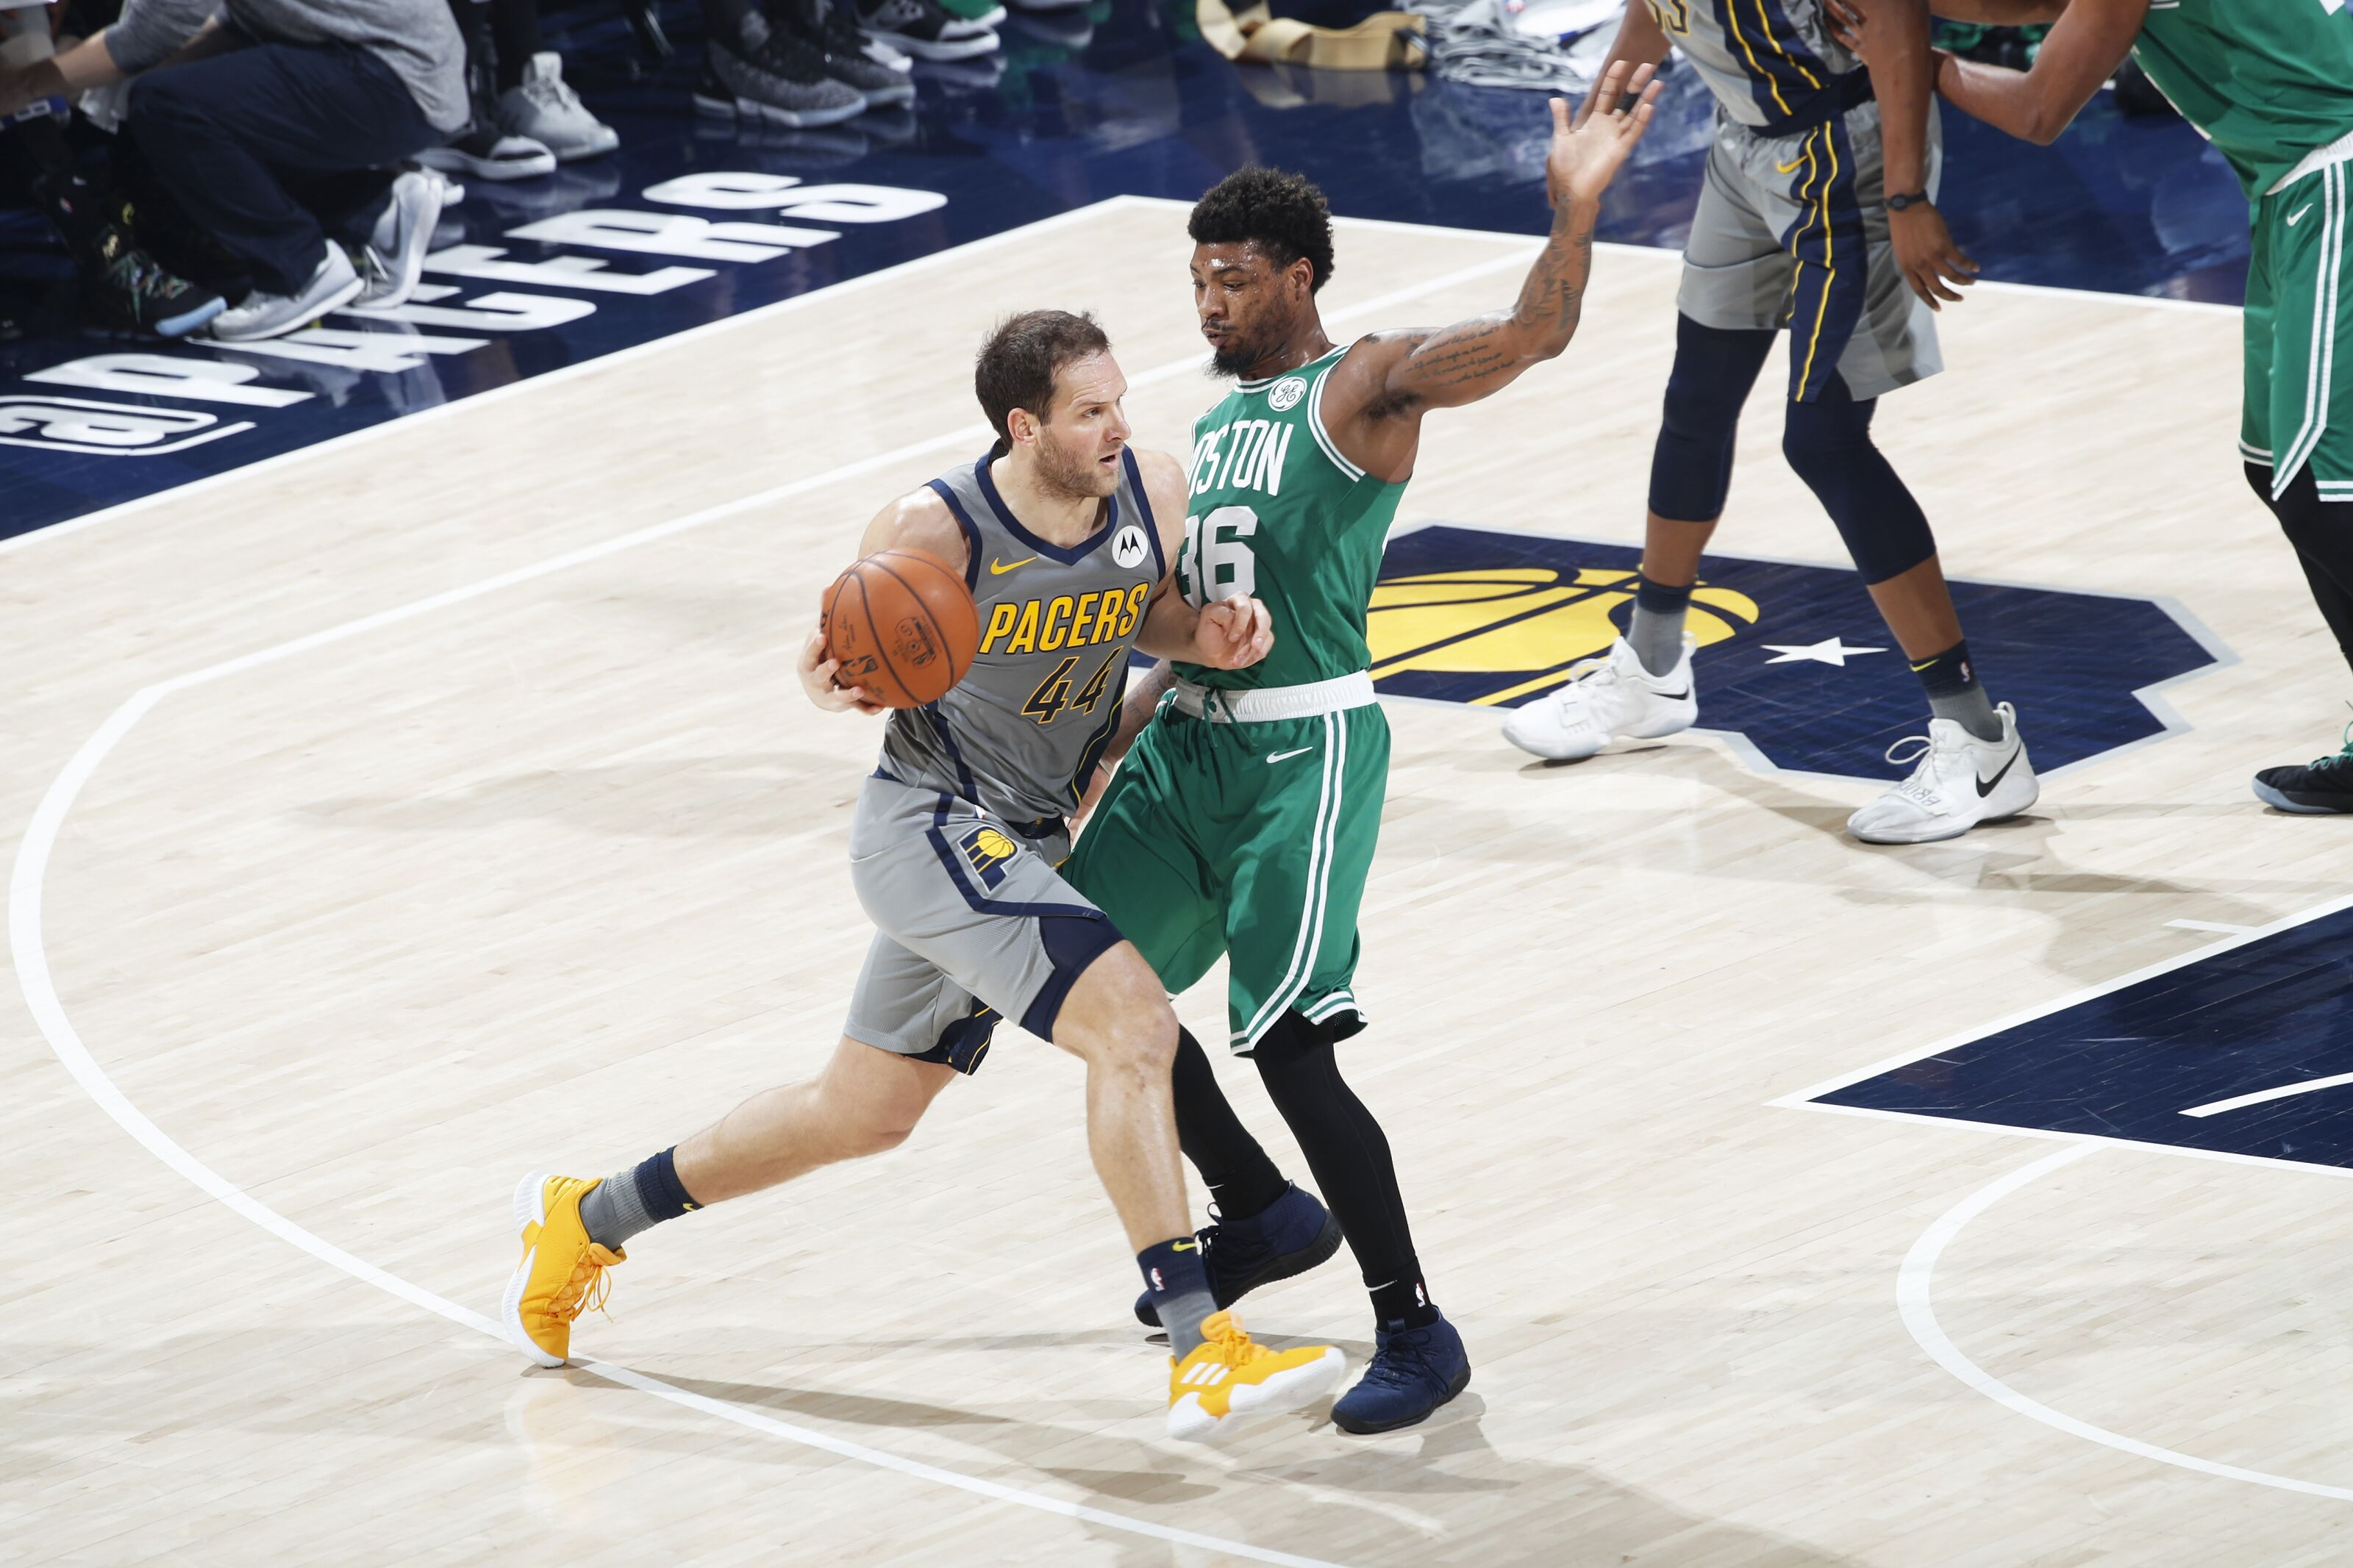 INDIANAPOLIS, IN - APRIL 05: Bojan Bogdanovic #44 of the Indiana Pacers tries to drive against Marcus Smart #36 of the Boston Celtics in the first half of a game at Bankers Life Fieldhouse on April 5, 2019 in Indianapolis, Indiana. The Celtics won 117-97. NOTE TO USER: User expressly acknowledges and agrees that, by downloading and or using the photograph, User is consenting to the terms and conditions of the Getty Images License Agreement. (Photo by Joe Robbins/Getty Images)